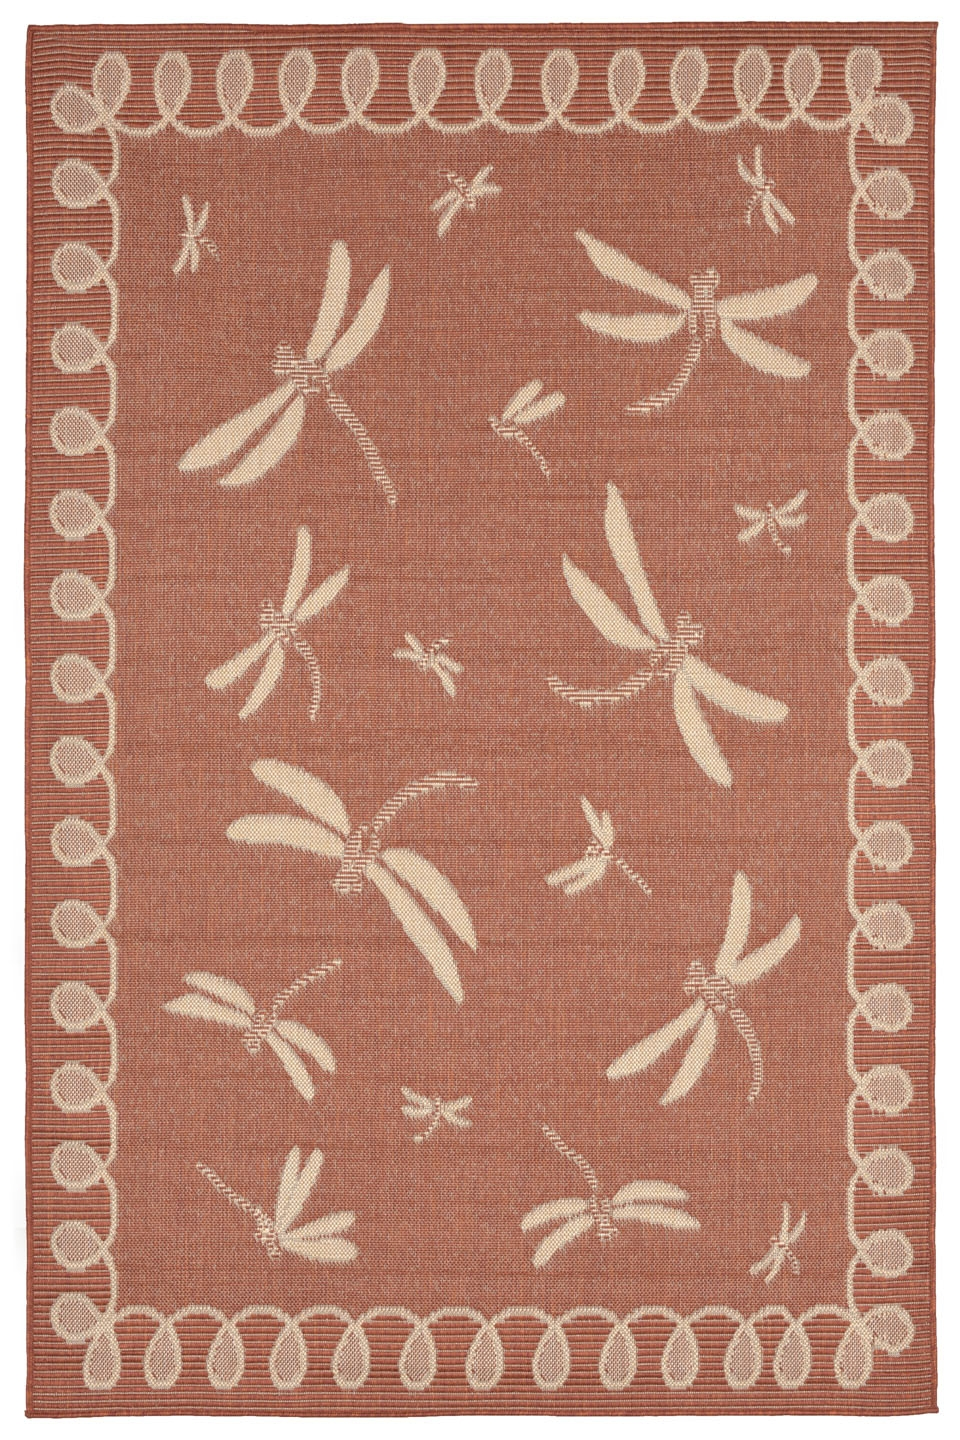 Transocean Terrace 1791/74 Dragonfly Terracotta Rug